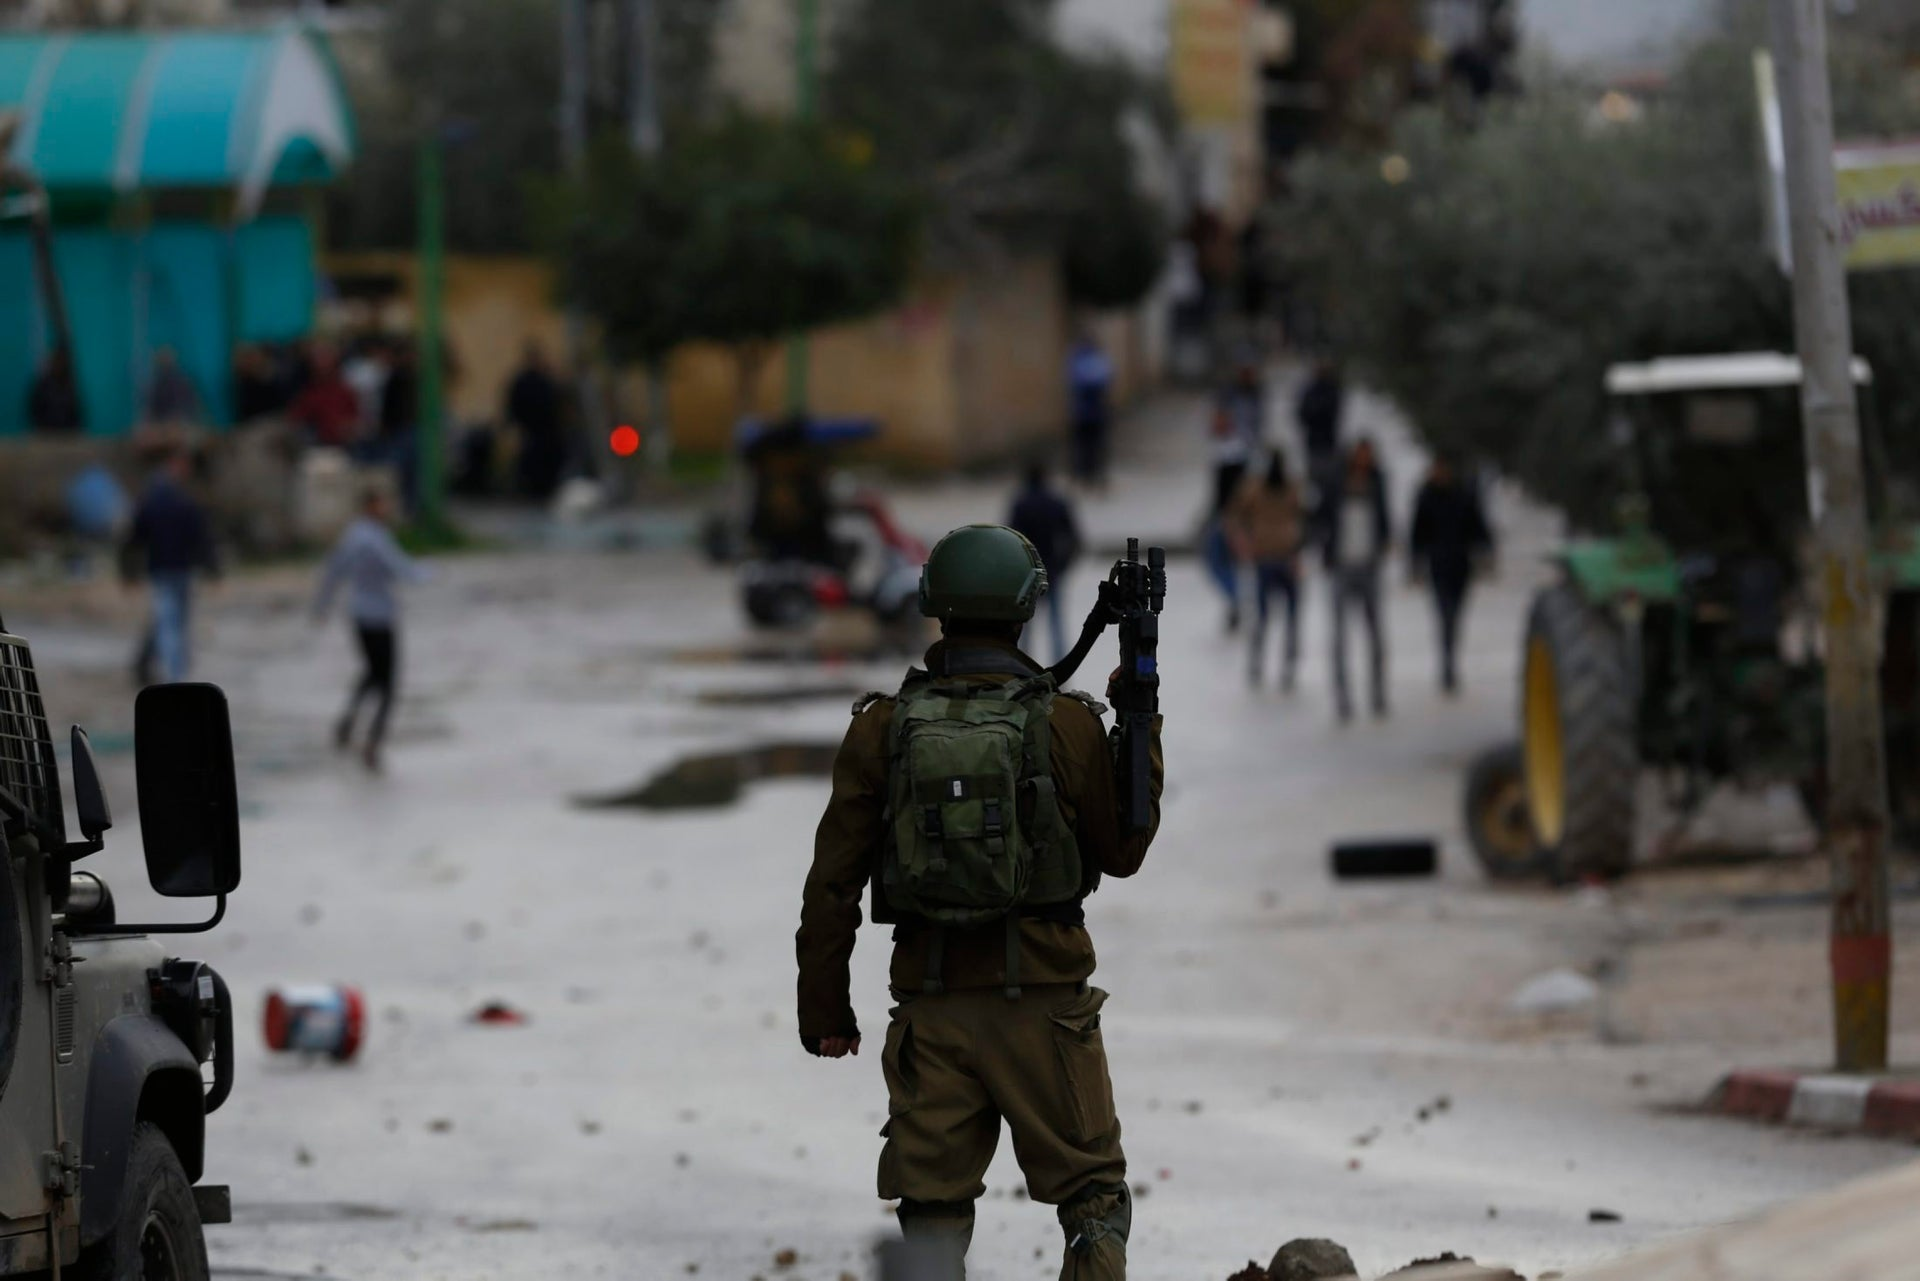 Palestinians clash with Israeli troops in the West Bank city of Jenin, Jan. 18, 2018.